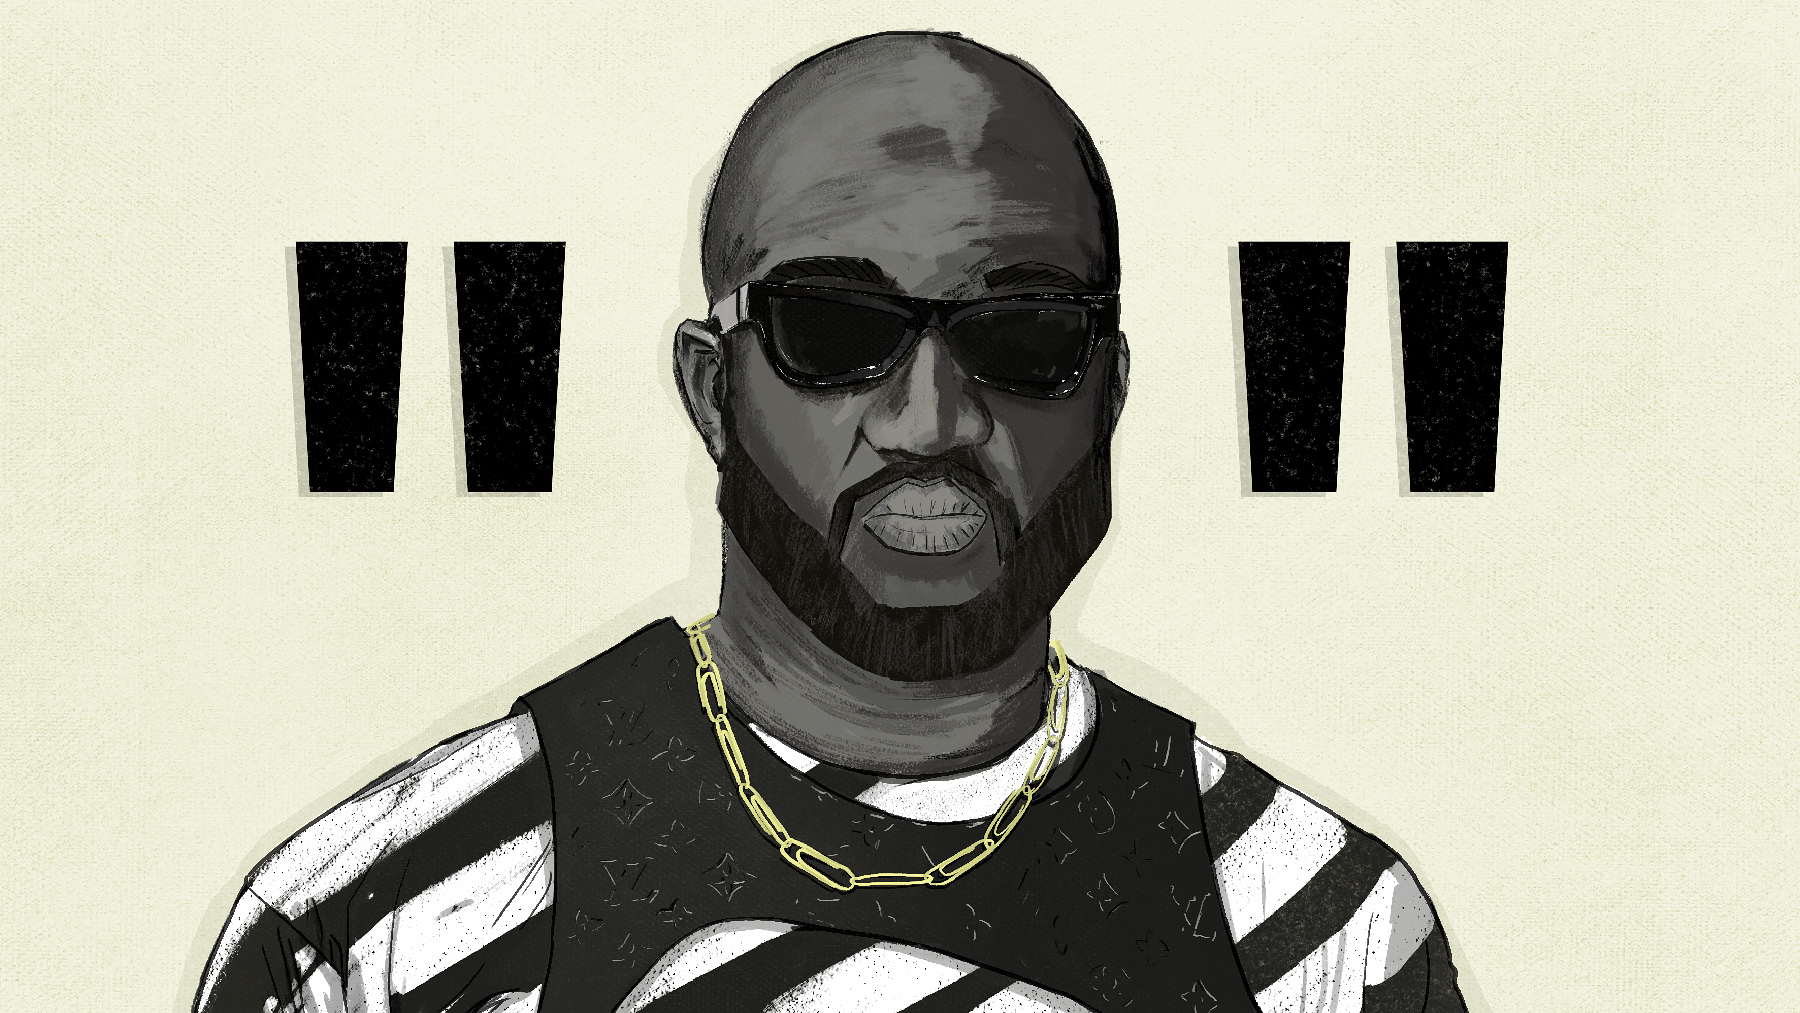 How Virgil Abloh made Off-White the hottest fashion brand in the world - Vox